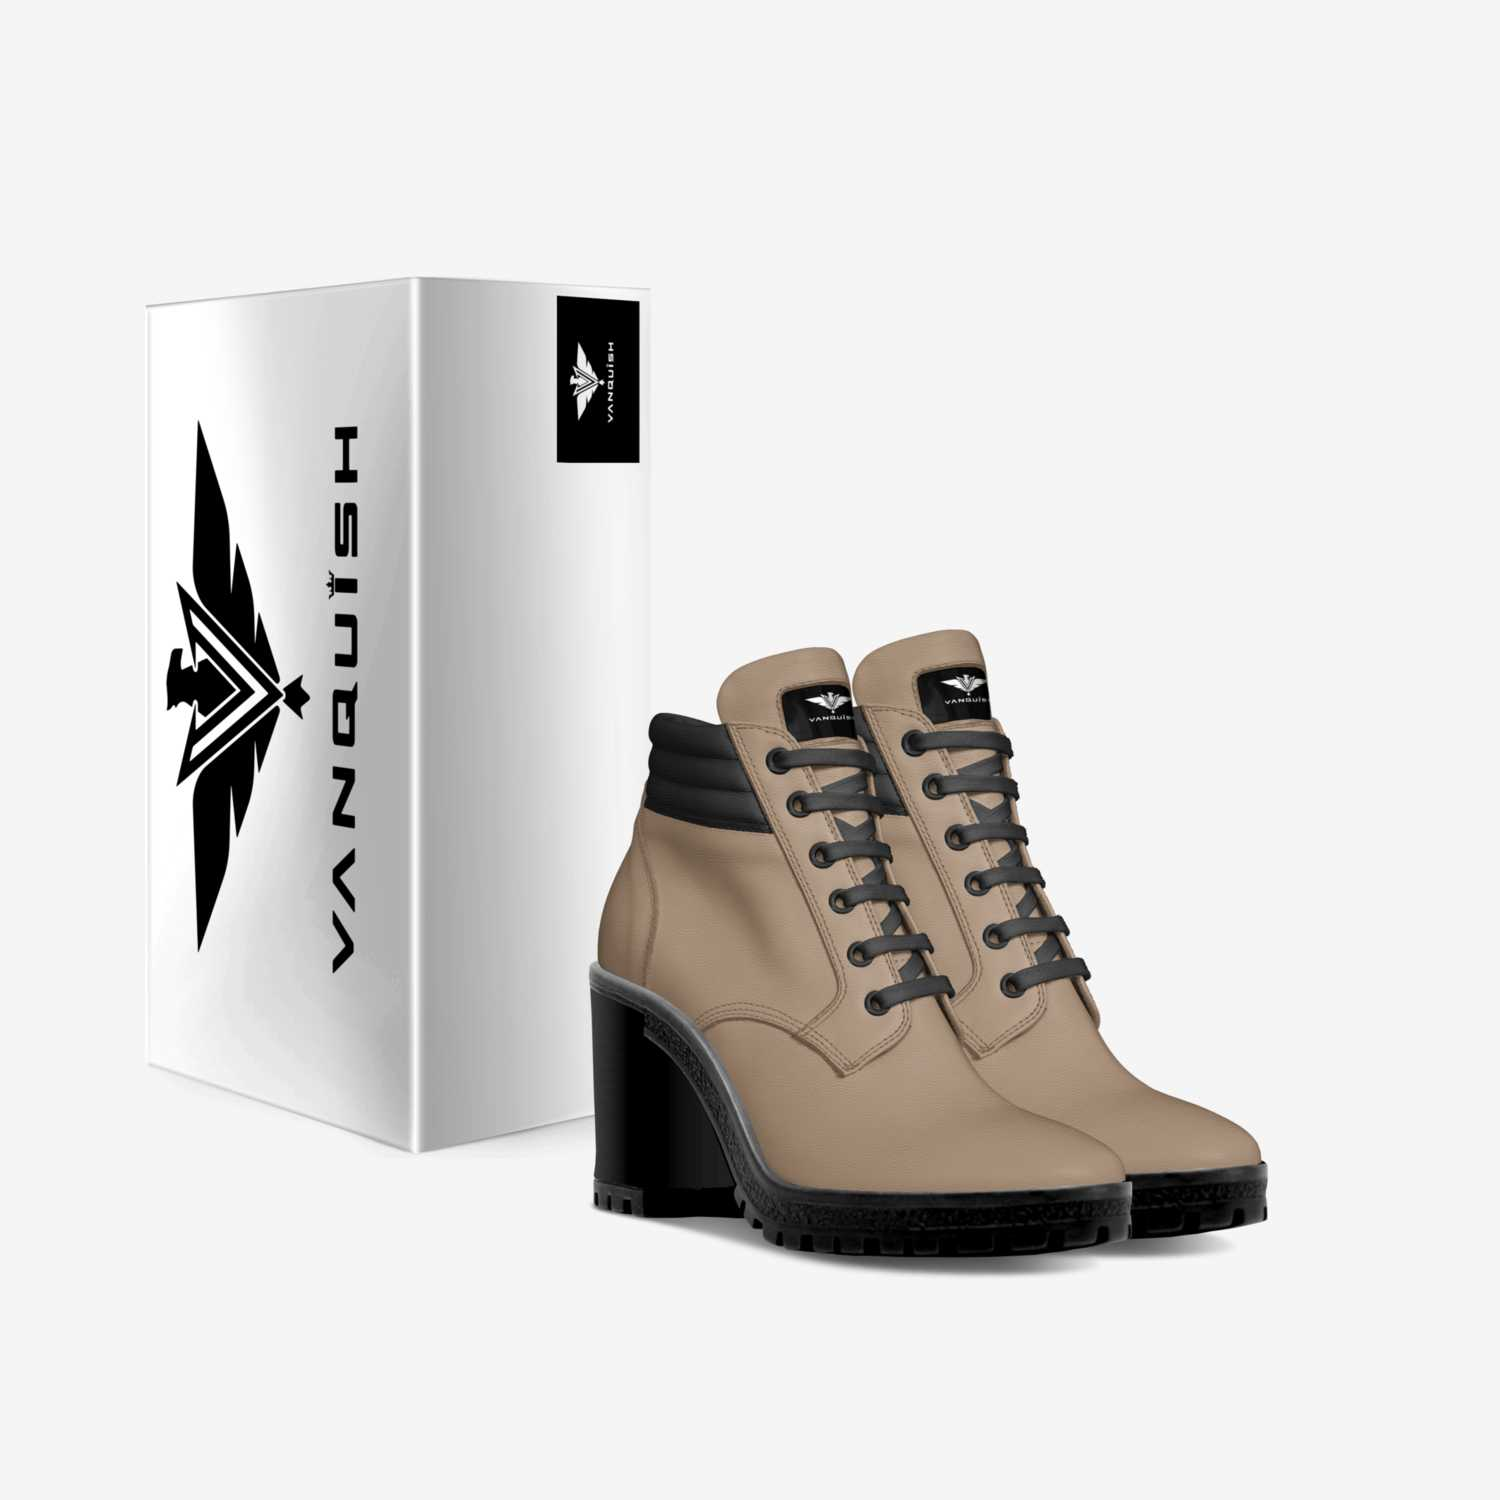 QUEENZ custom made in Italy shoes by Aaron Diesel | Box view